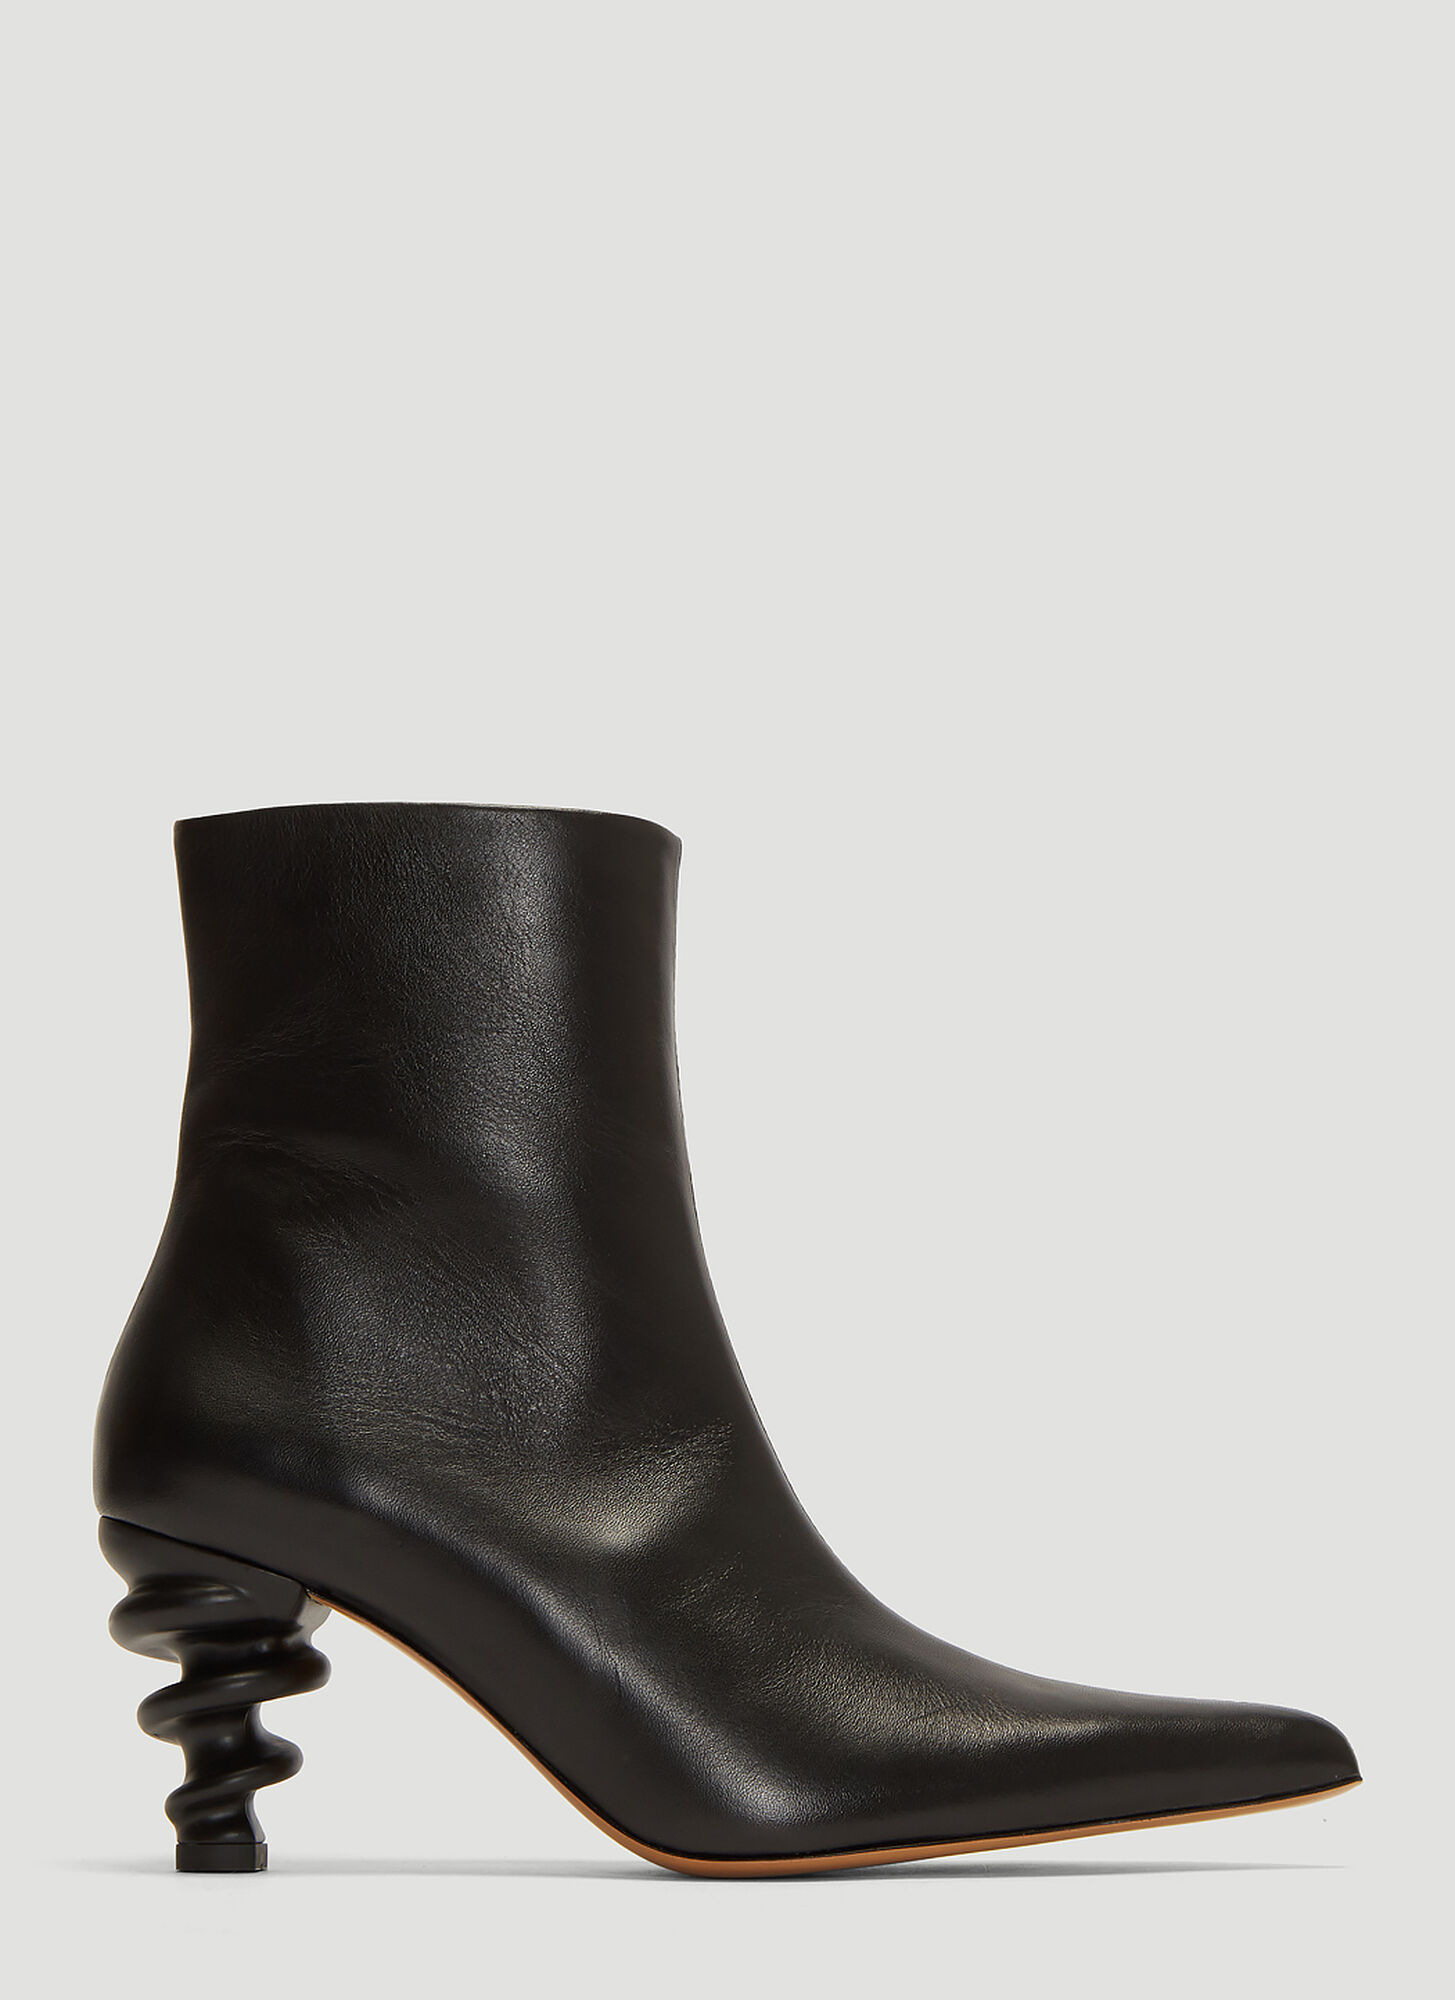 Kalda Island Boots in Black